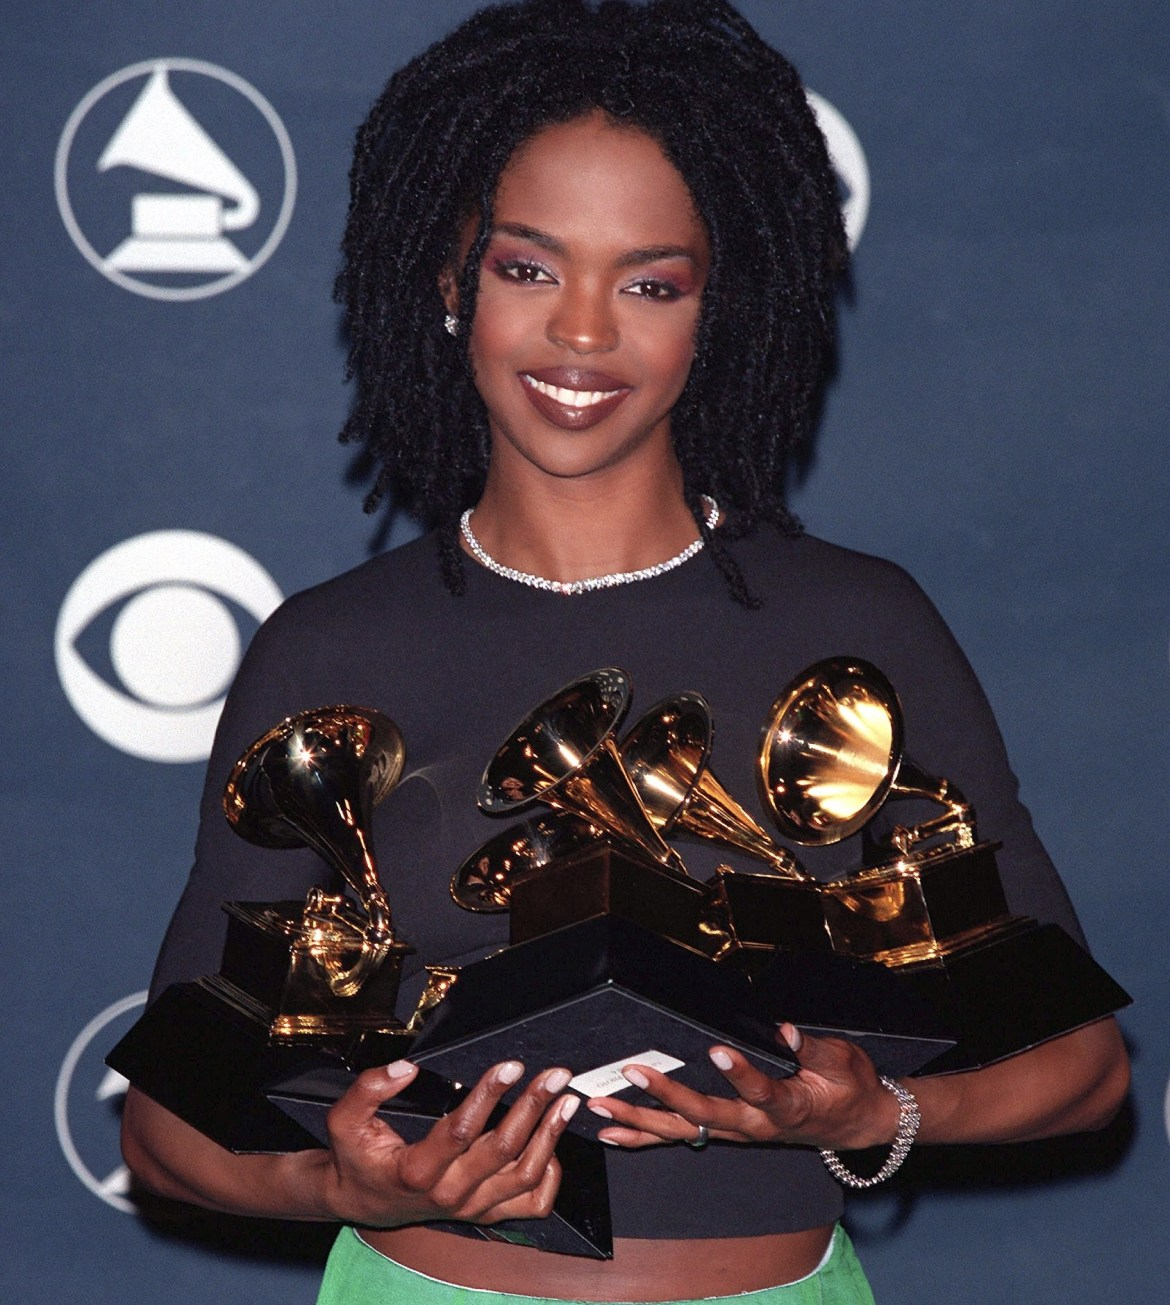 Lauryn Hill becomes the first female rapper in history to sell 10 million copies of an album